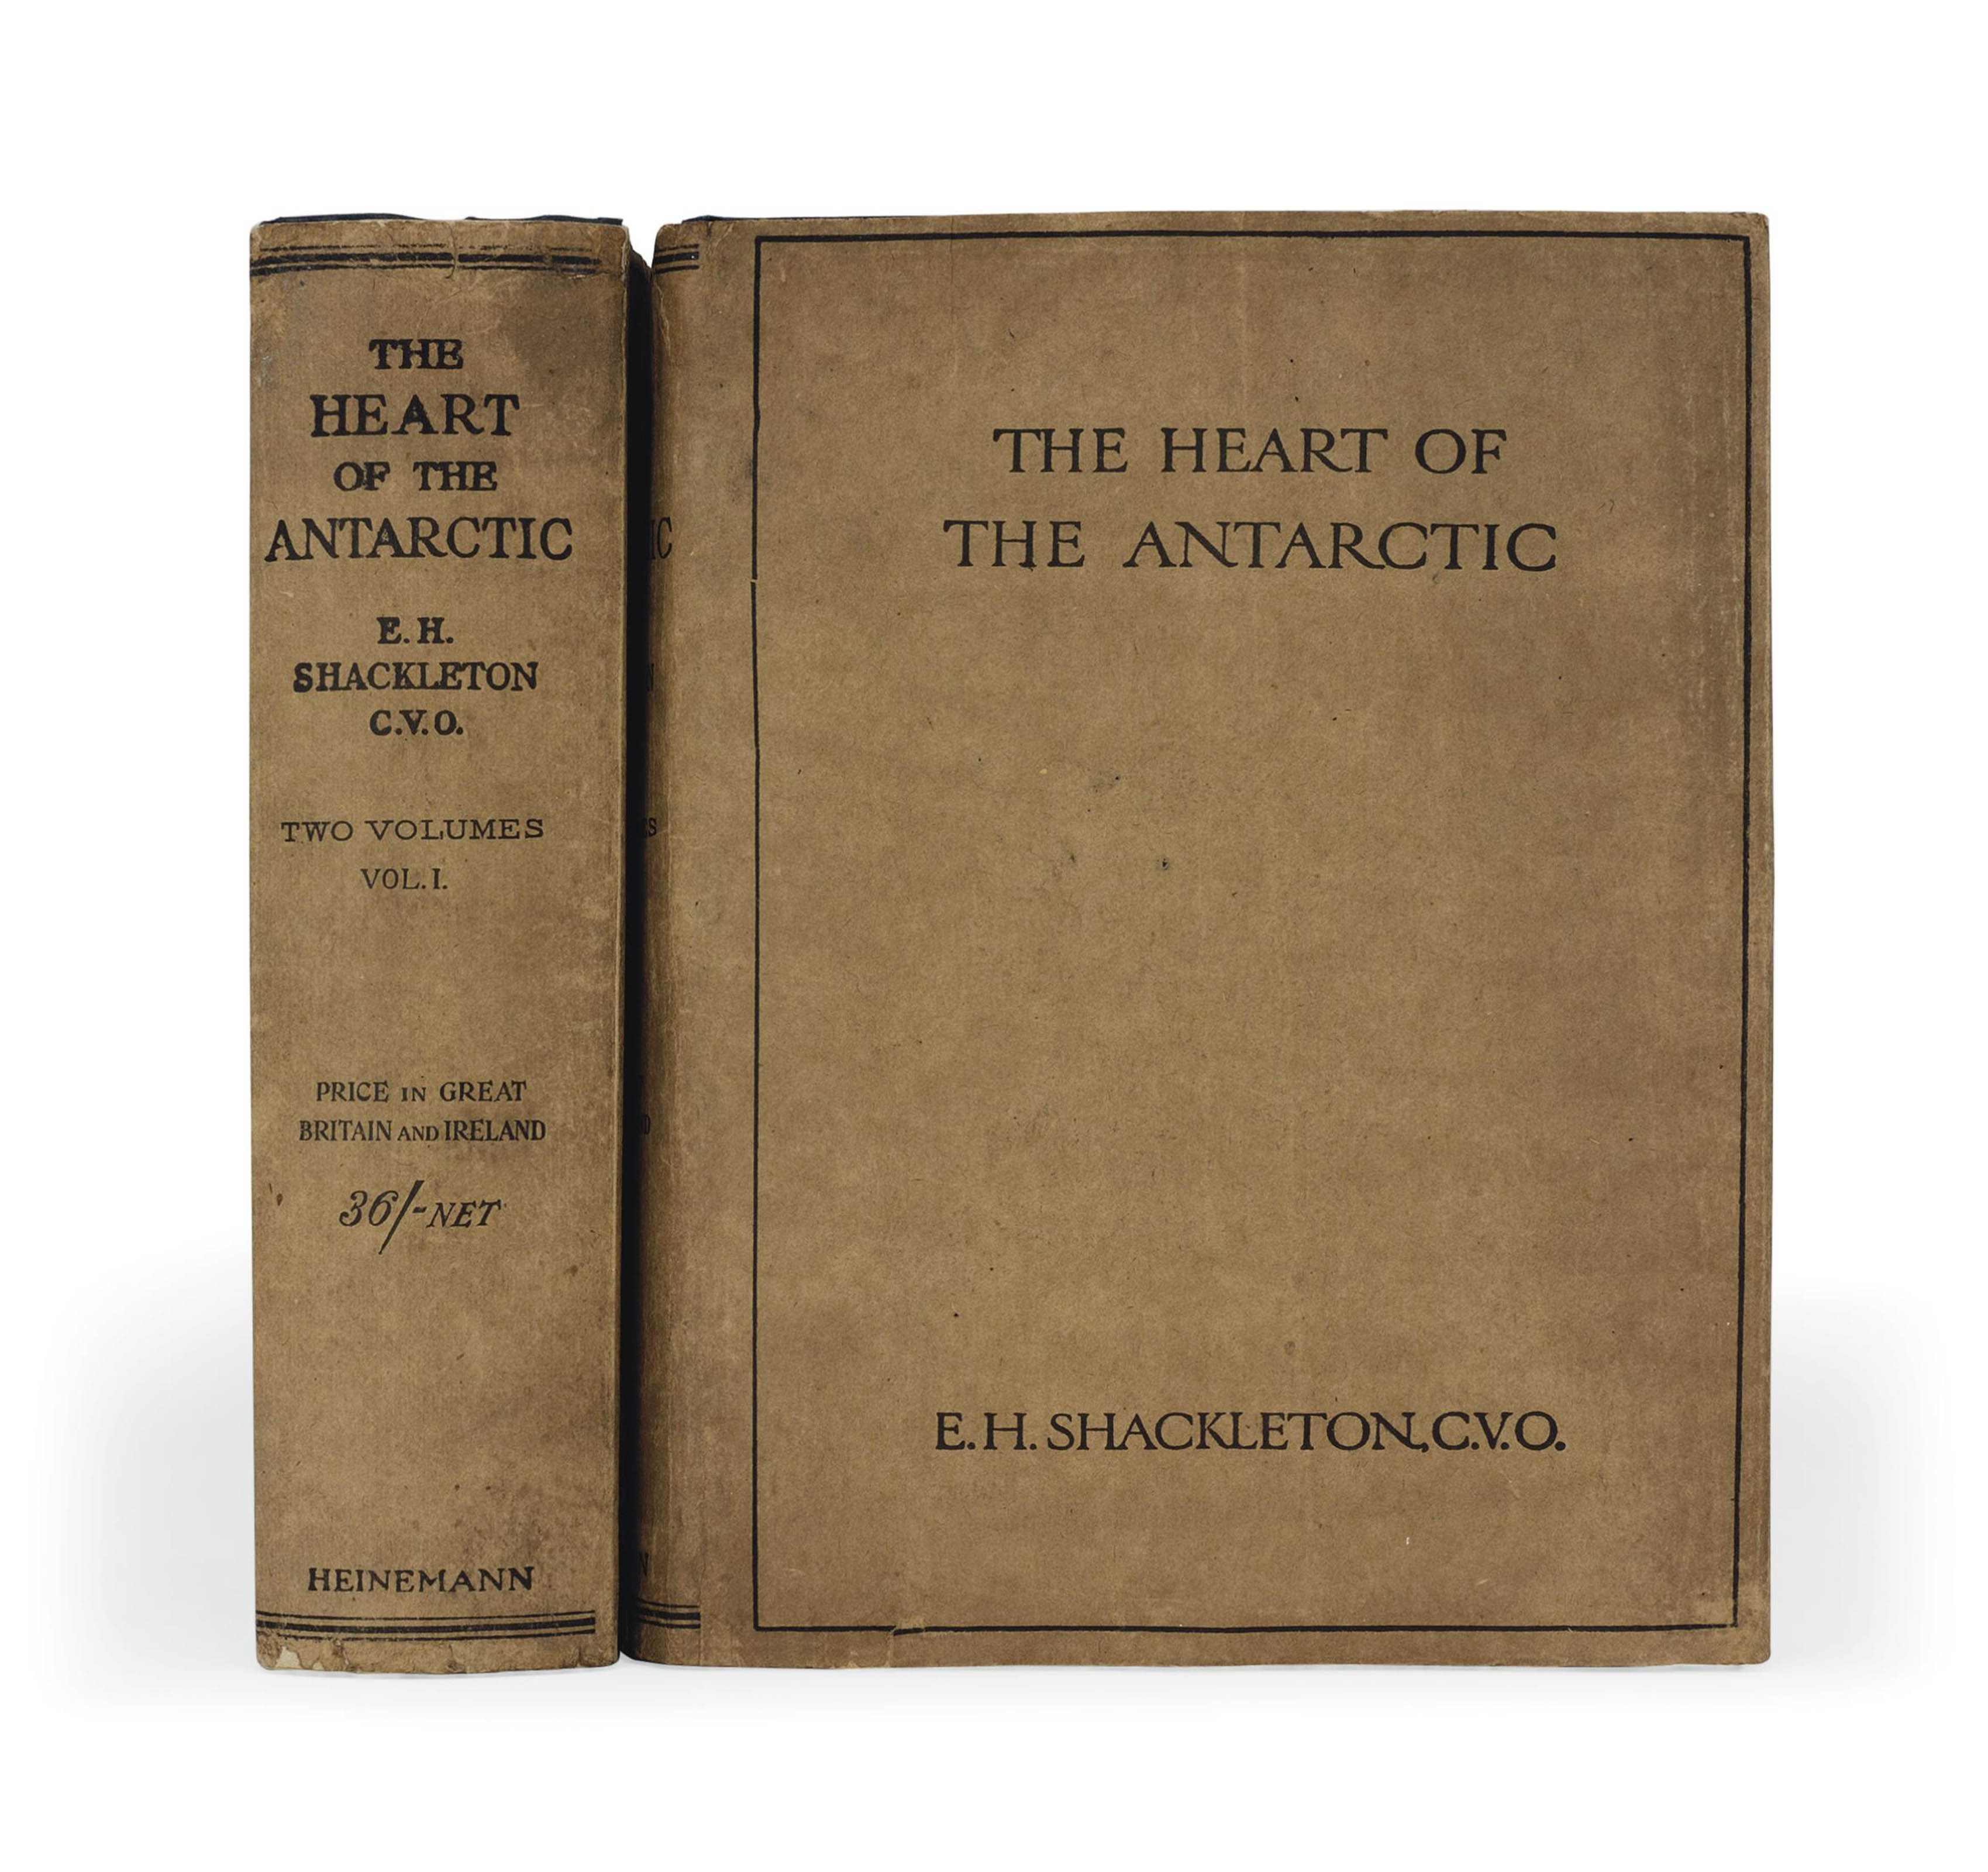 SHACKLETON, Sir Ernest Henry (1874-1922). The Heart of the Antarctic being the story of the British Antarctic Expedition 1907-1909. London: Ballantyne & Co. for William Heinemann, 1909.